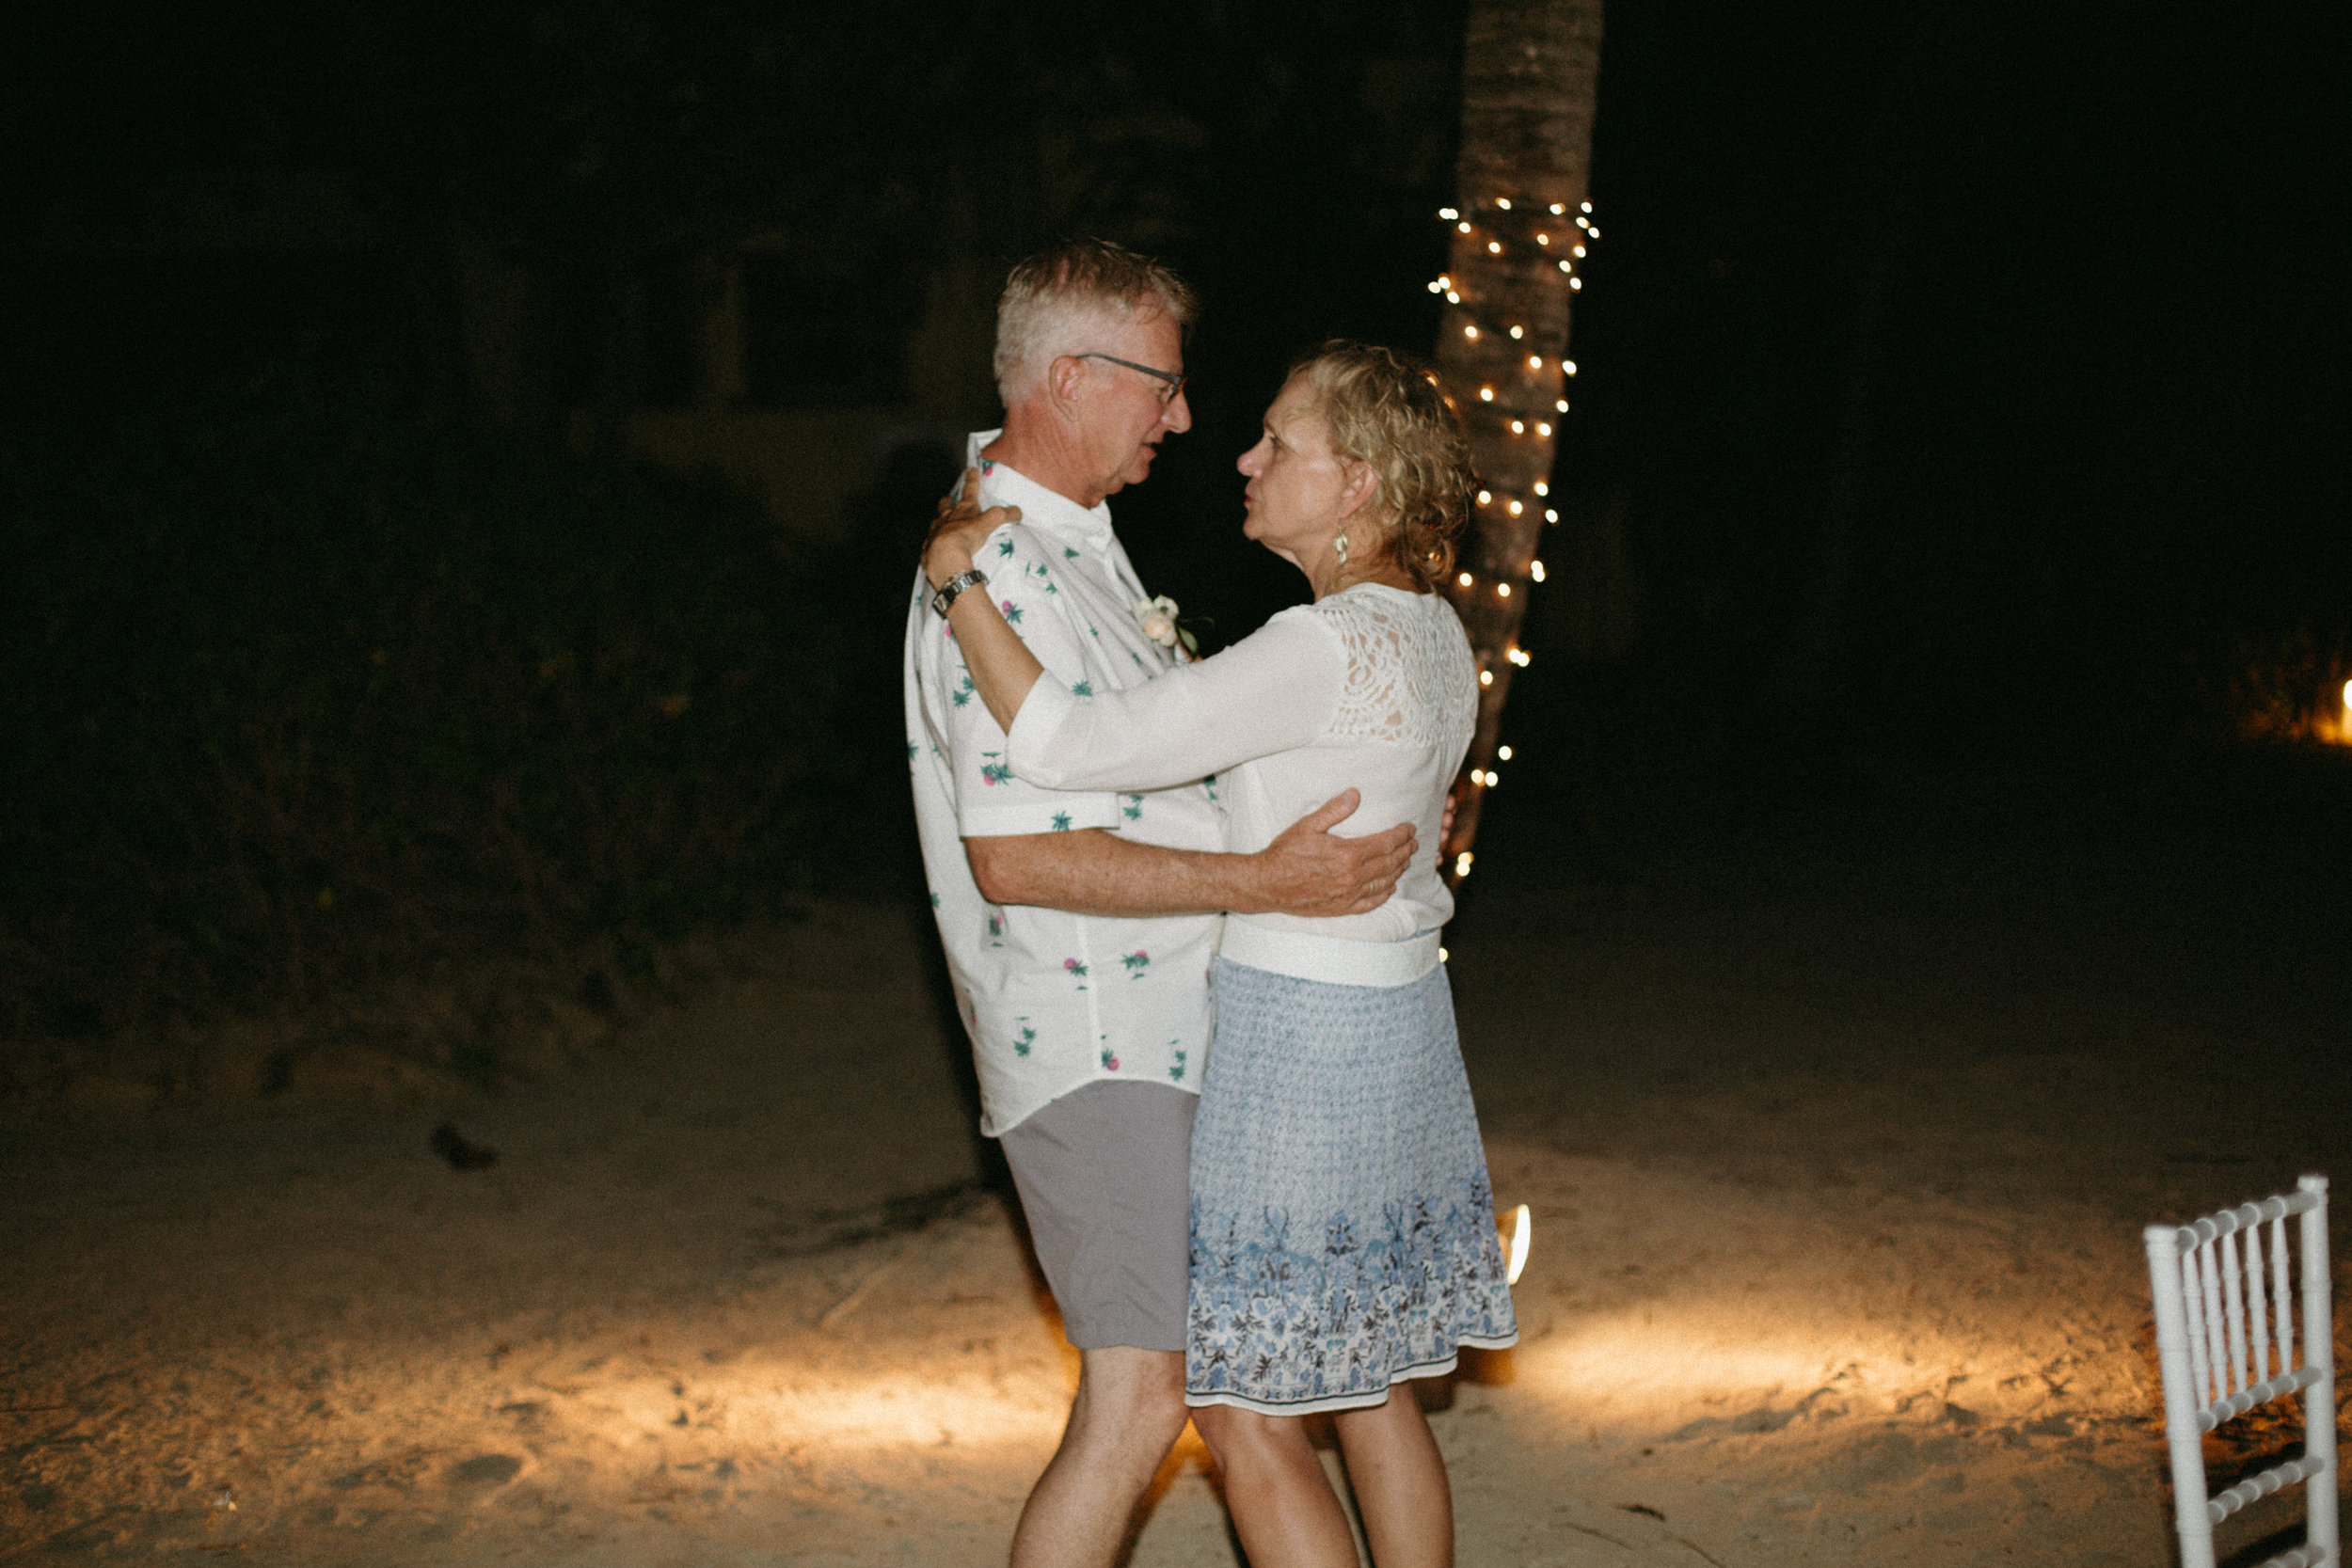 san-pescador-belize-wedding-christinemariephoto-j-k-165.jpg